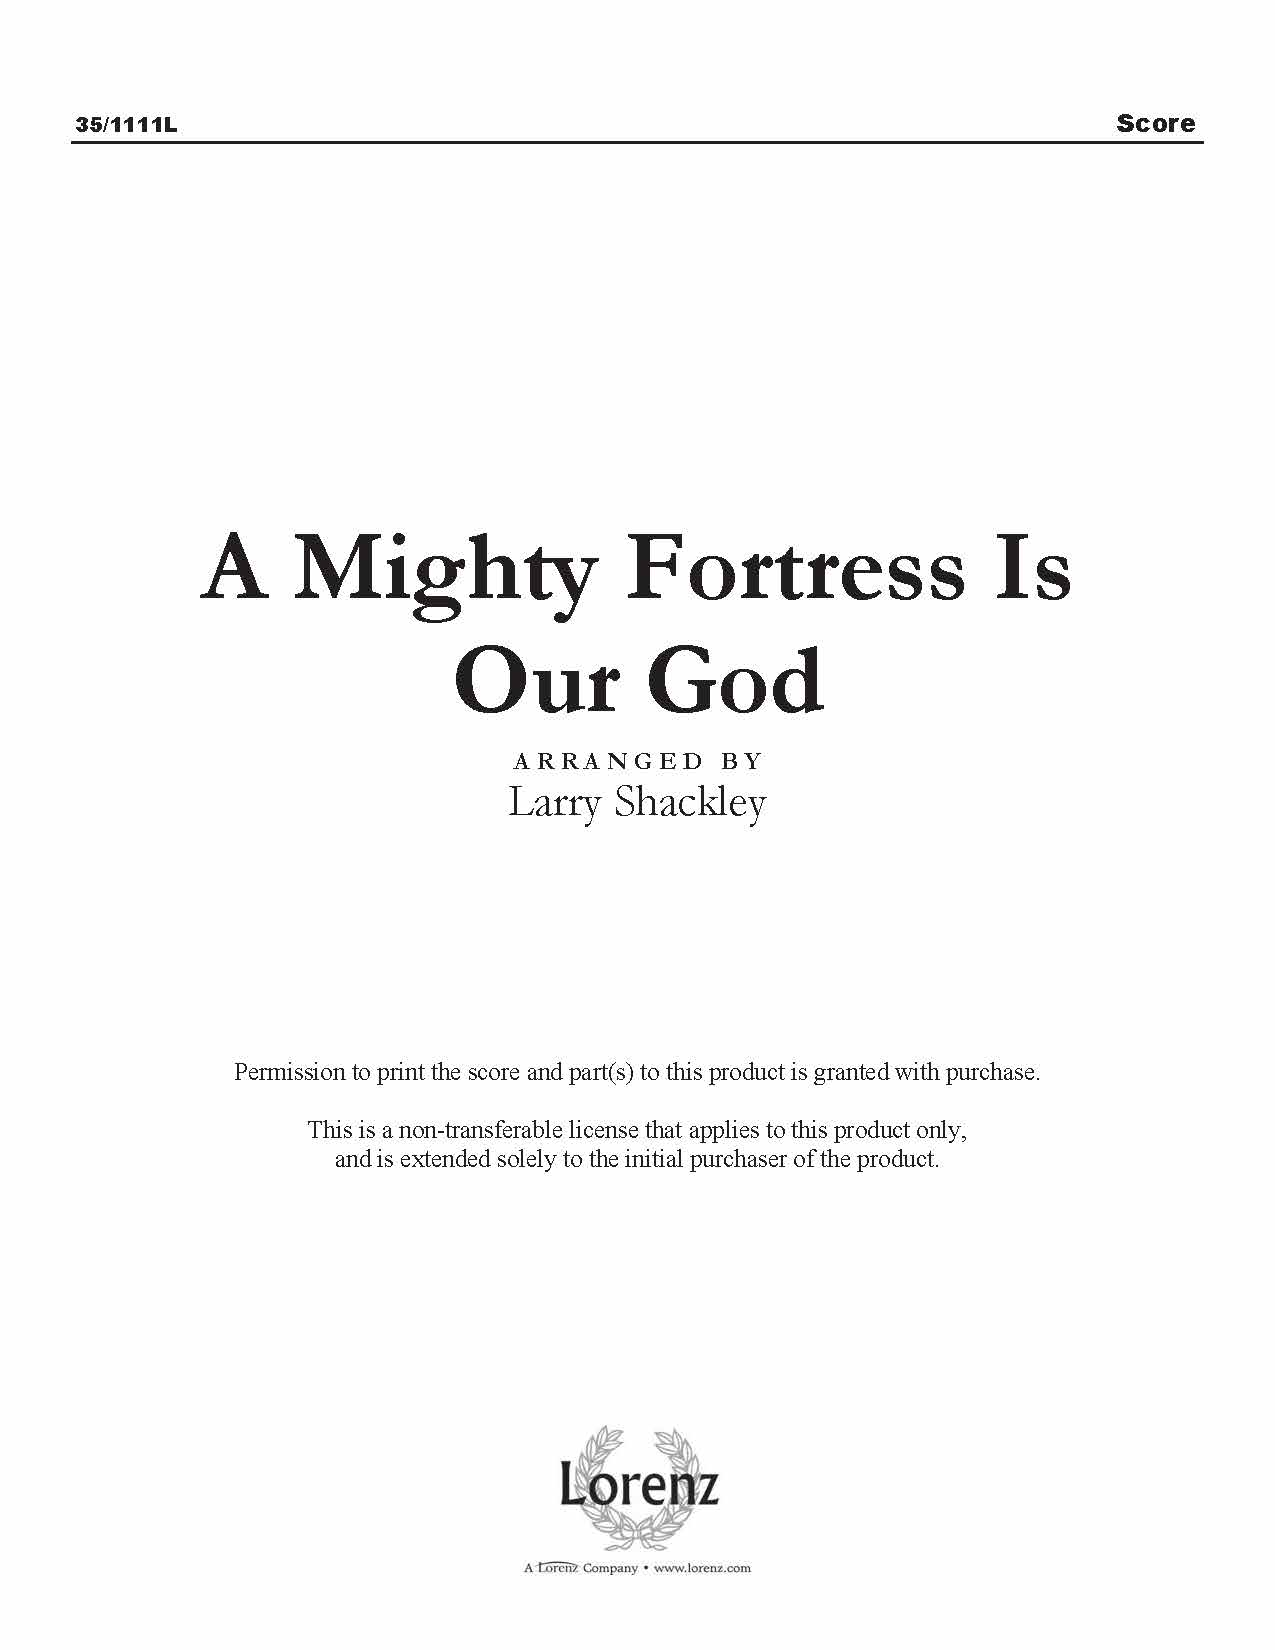 A Mighty Fortress Is Our God (Digital Delivery)